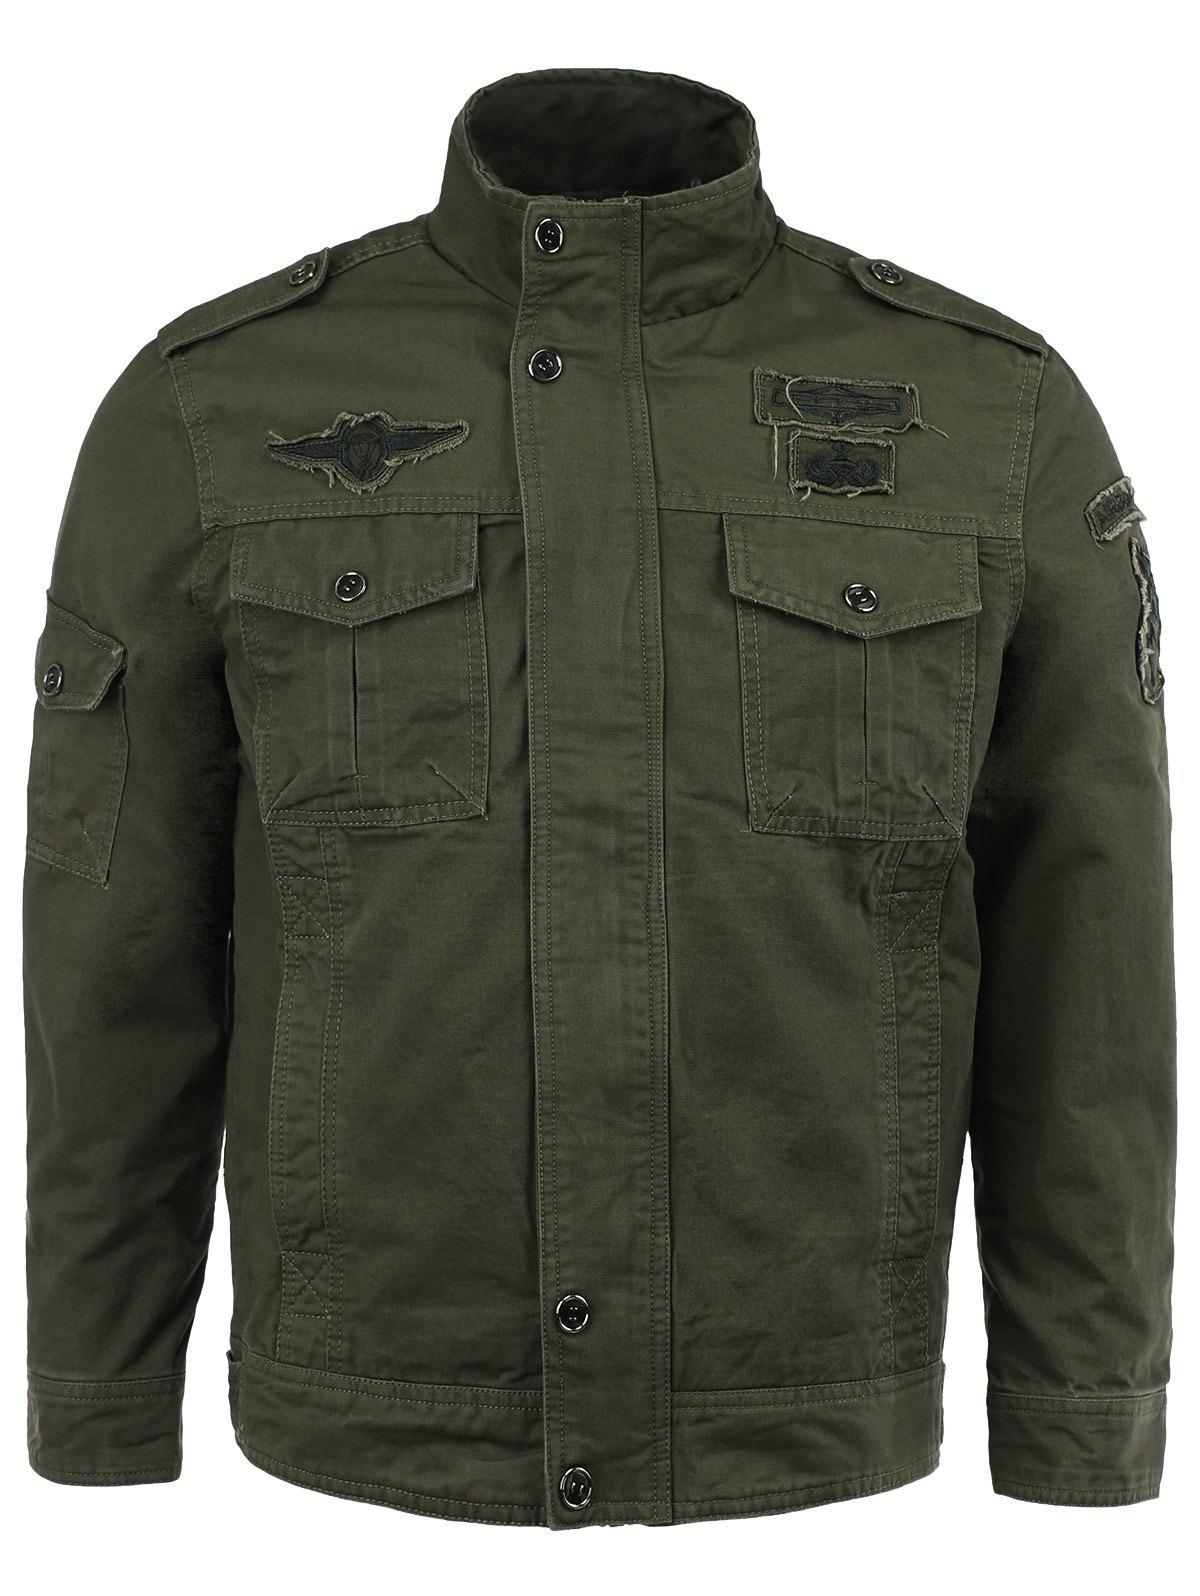 Cotton Blends Solid Color Badge Stand Collar Long Sleeve Jacket - ARMY GREEN 3XL